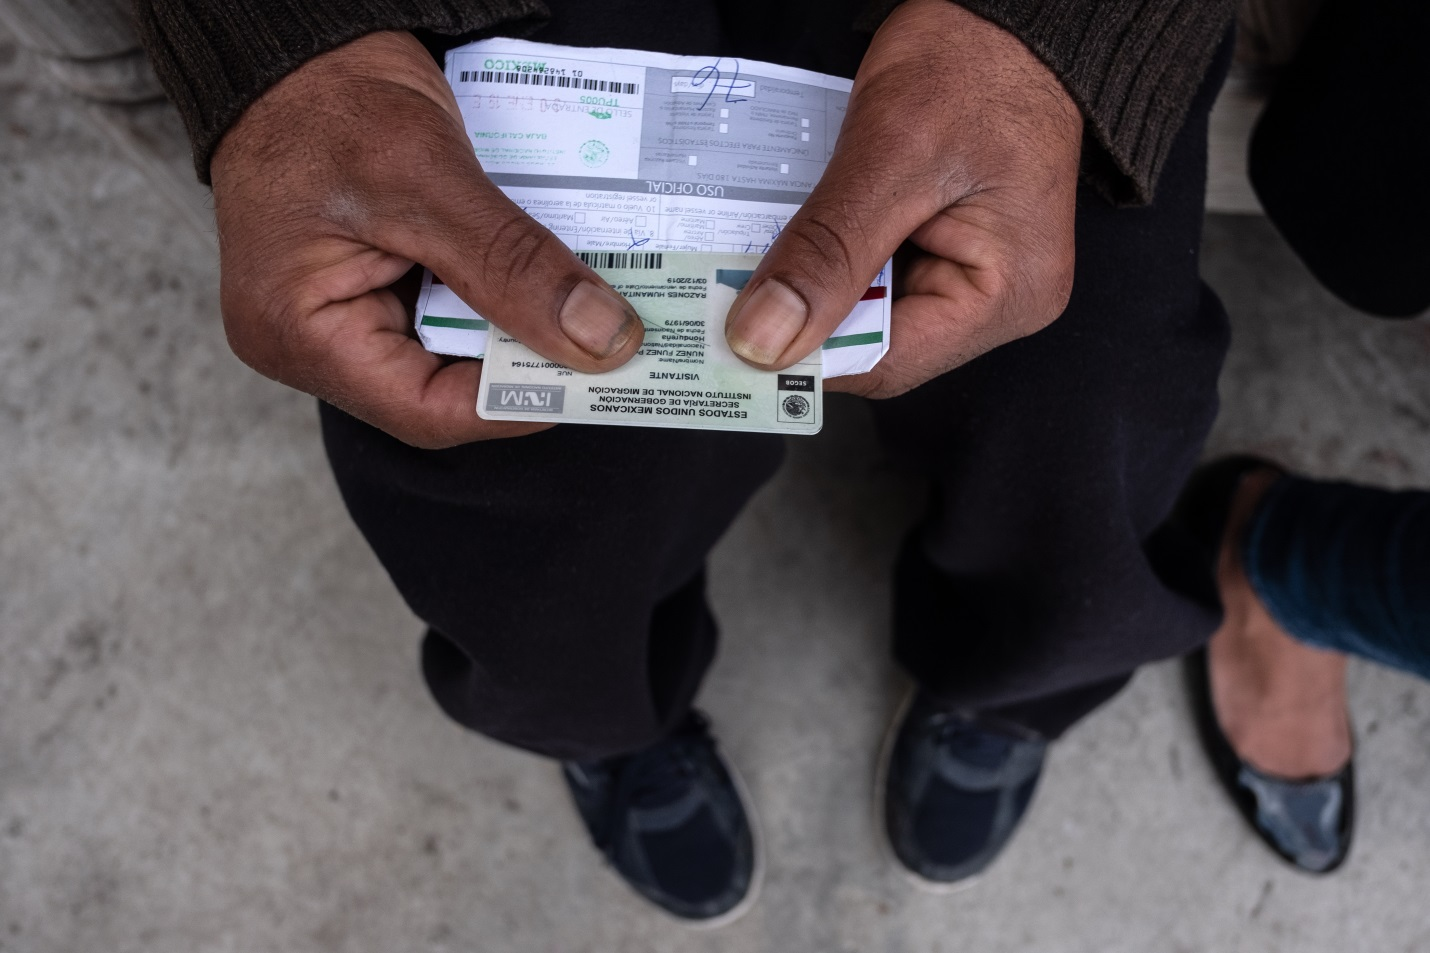 Asylum seeker holds a humanitarian visa card and a piece of paper indicating how long he is legally able to be in Mexico